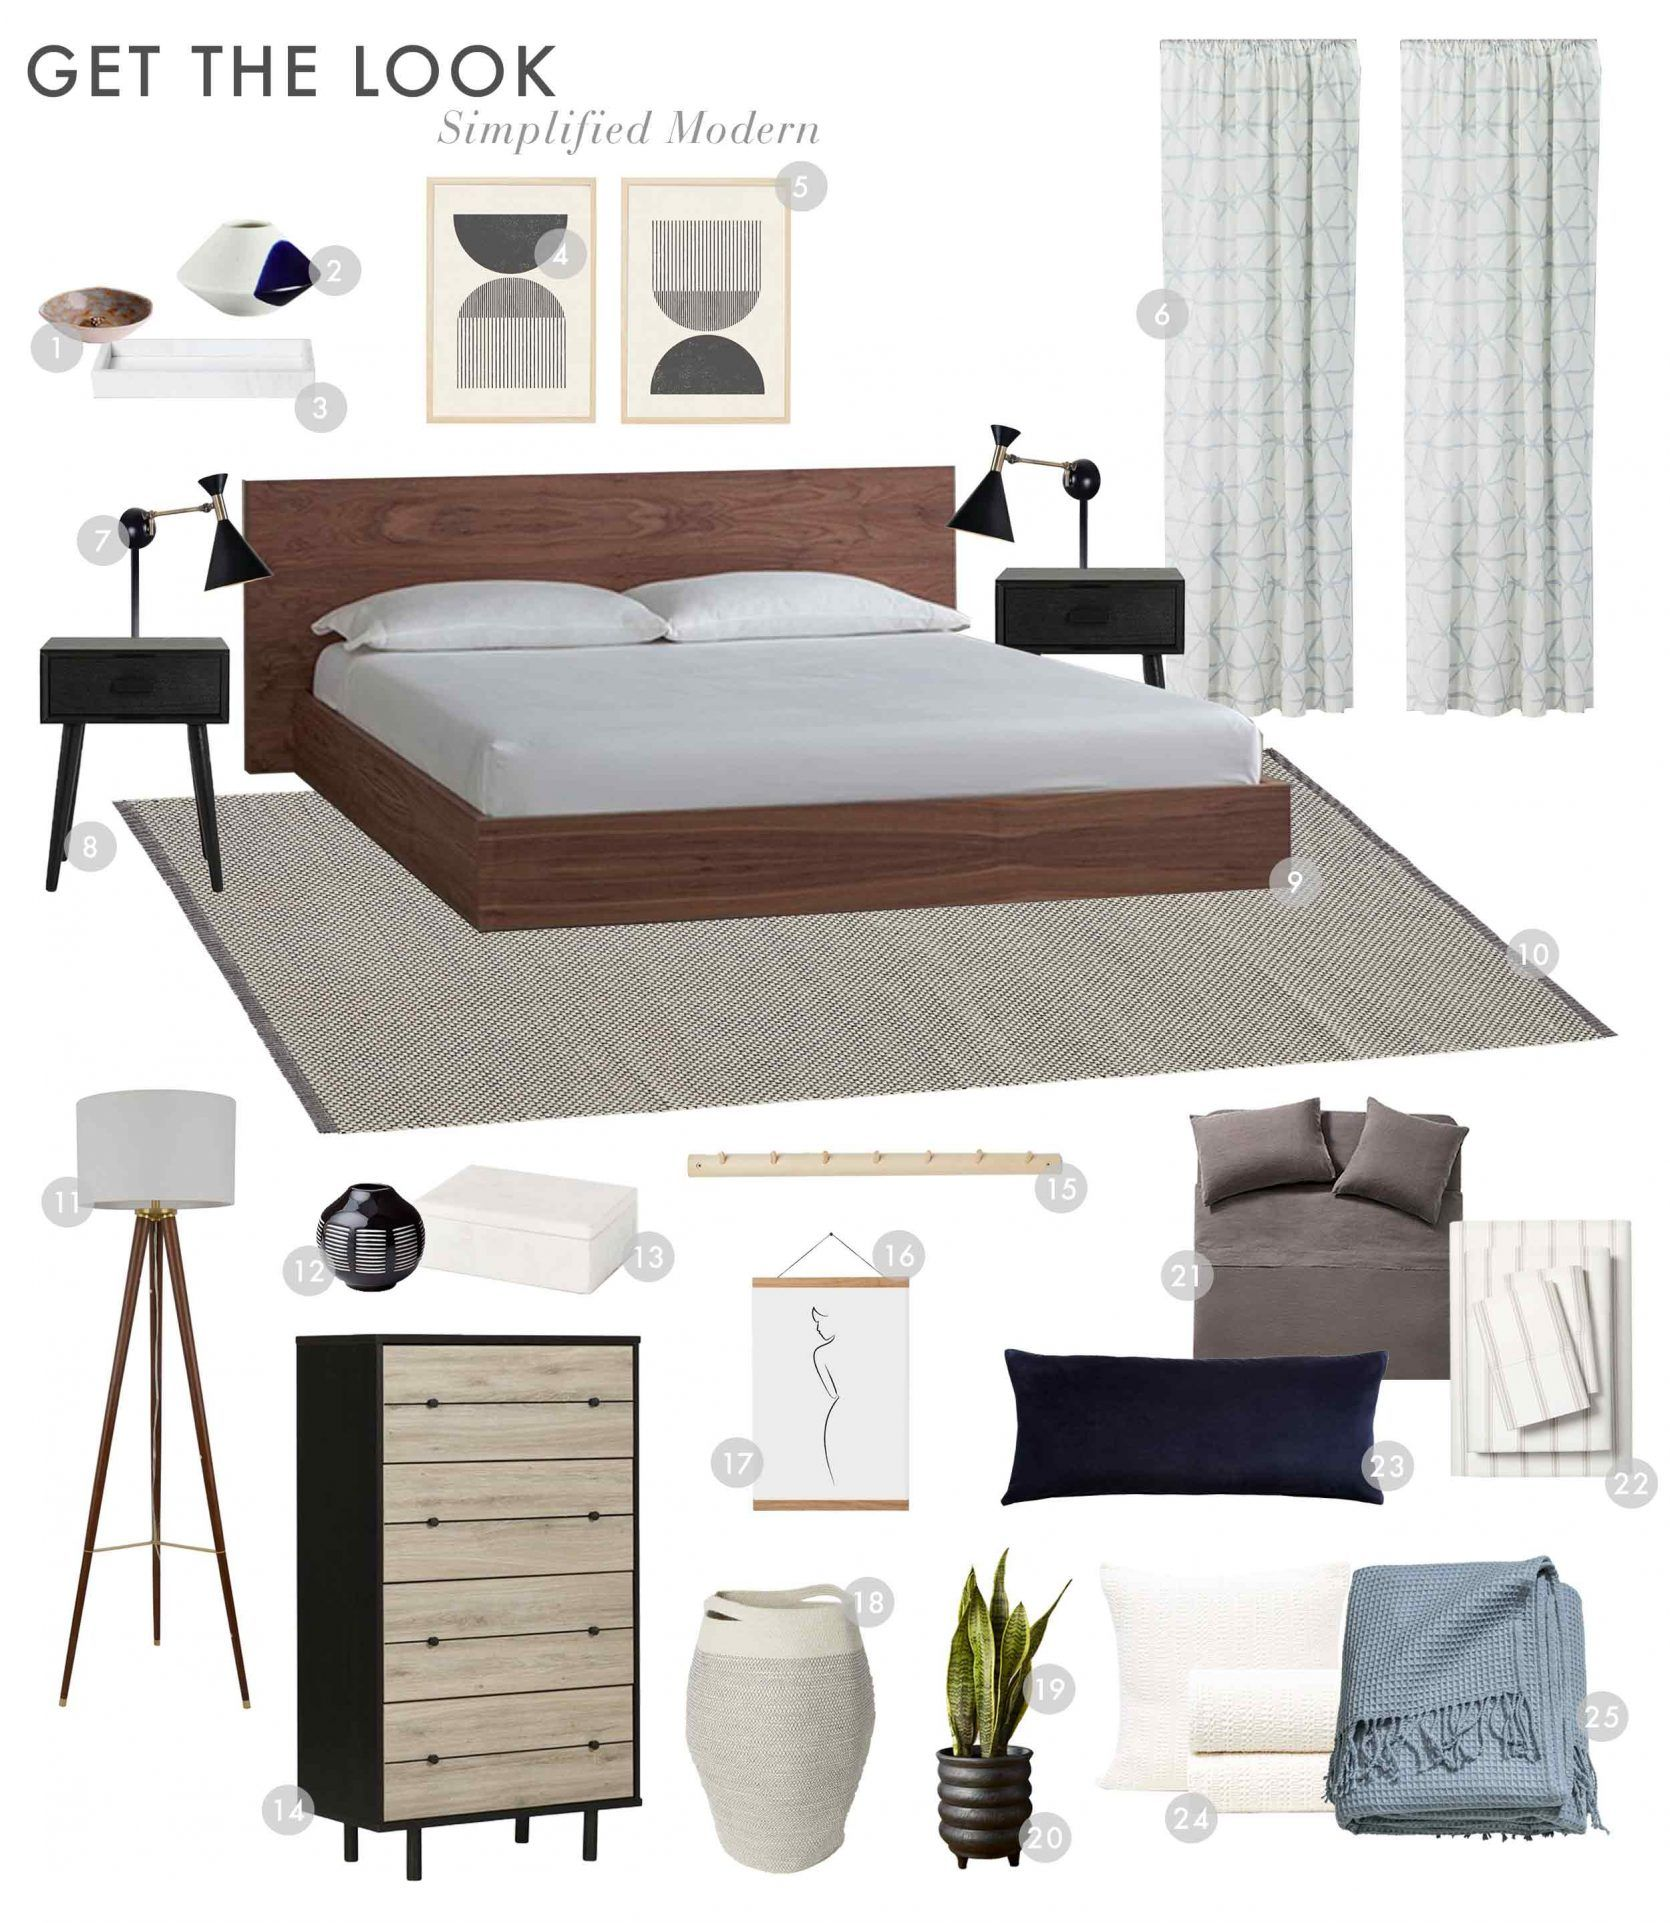 3 Ways To Decorate A Renter Friendly Bedroom On A Budget Home Home Decor Bedroom Bedroom Decor